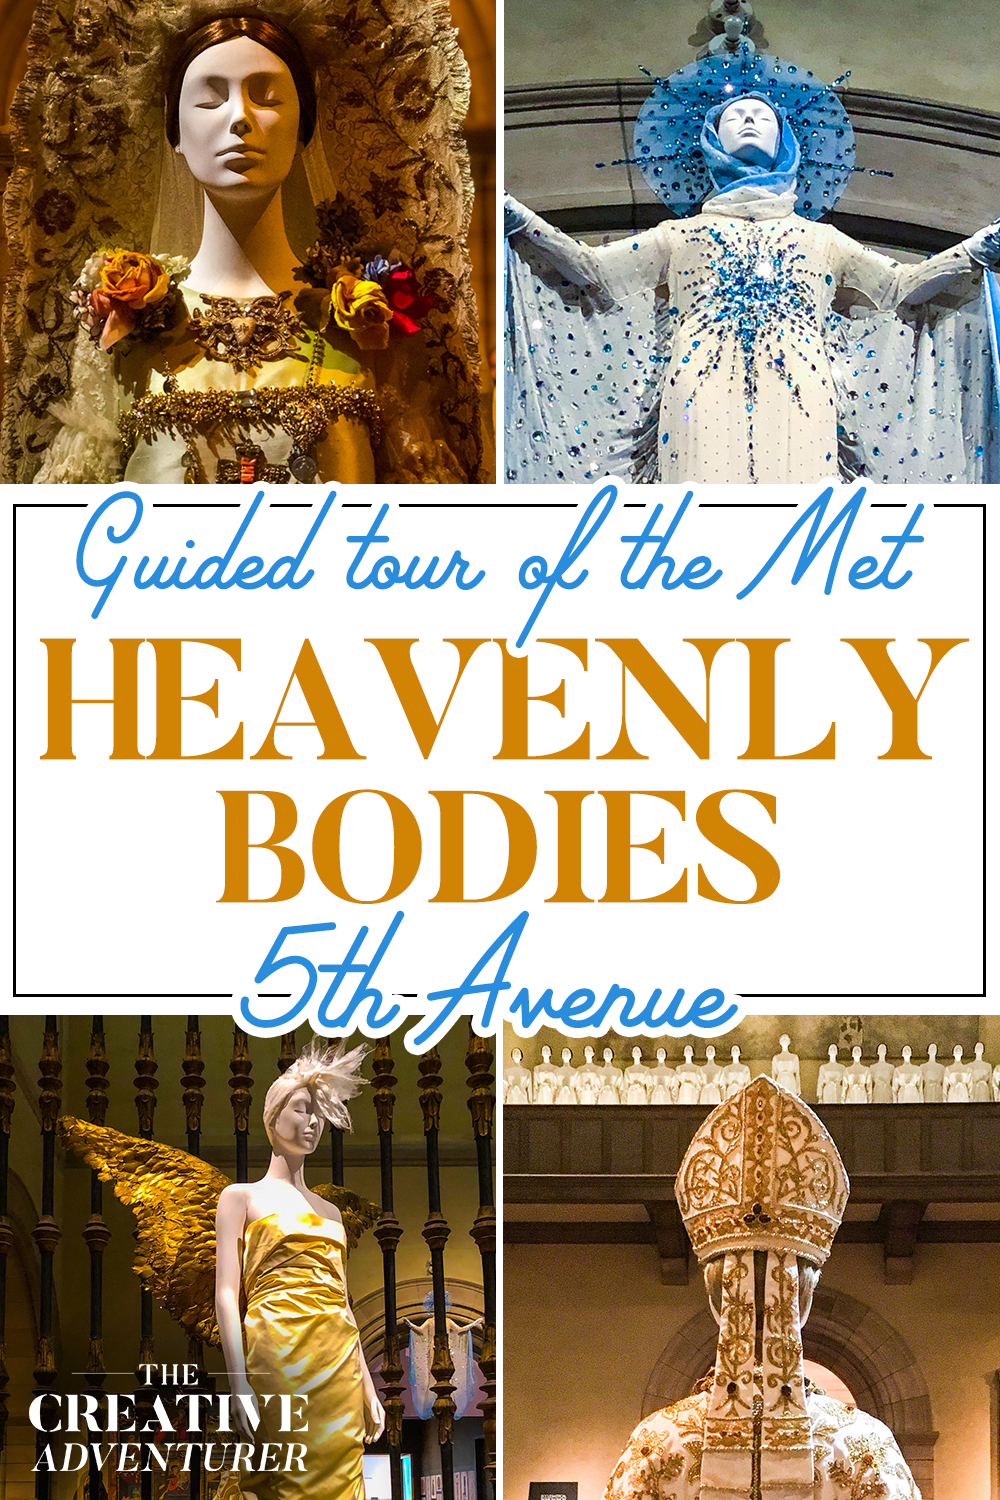 MET Heavenly Bodies Exhibition: 5th Avenue Collection Guide